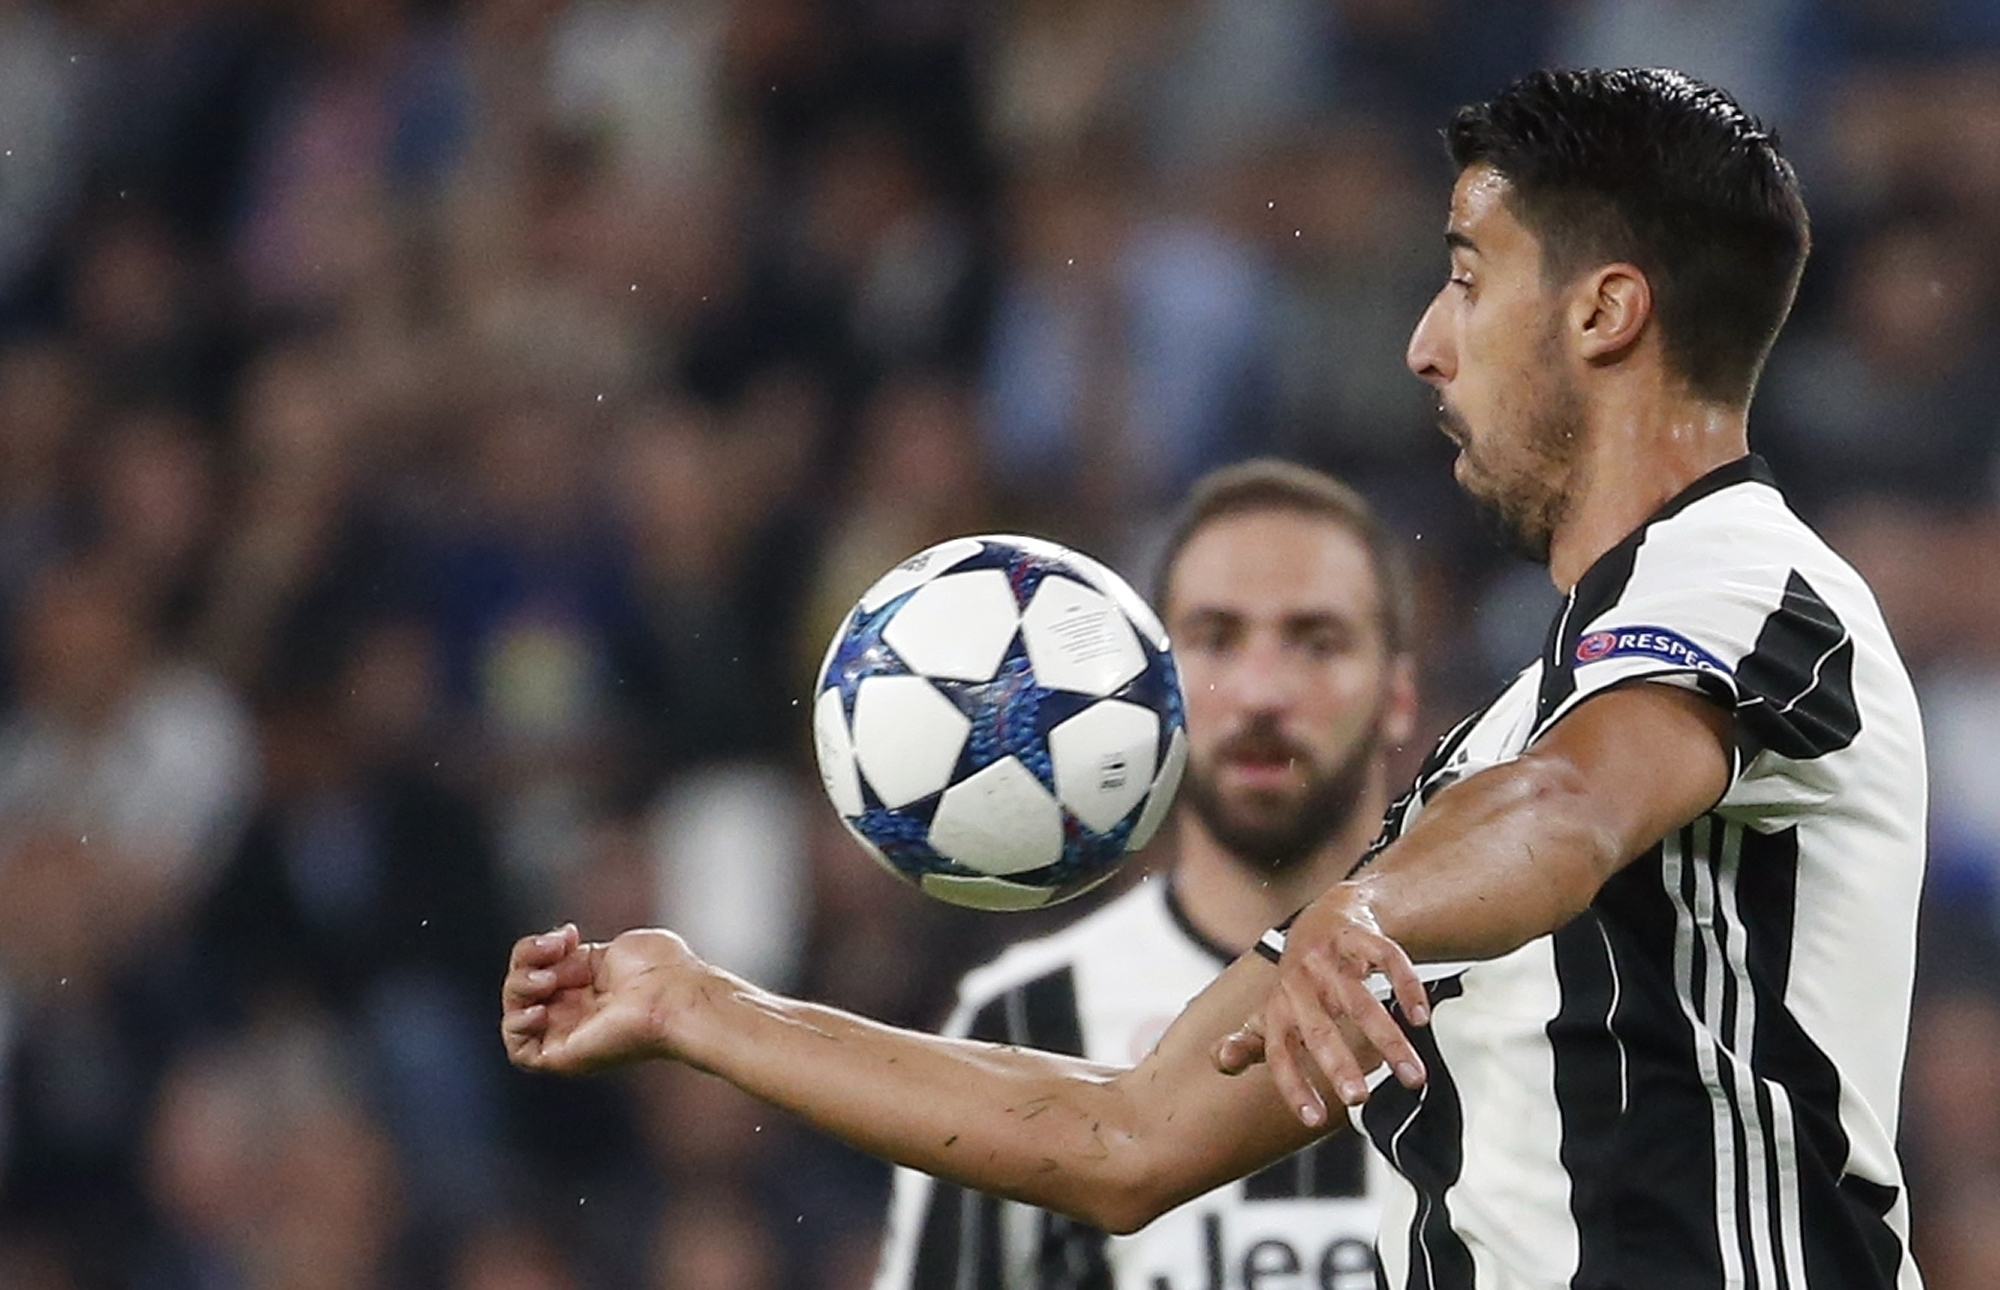 Khedira extends contract at Juventus for 2 more seasons